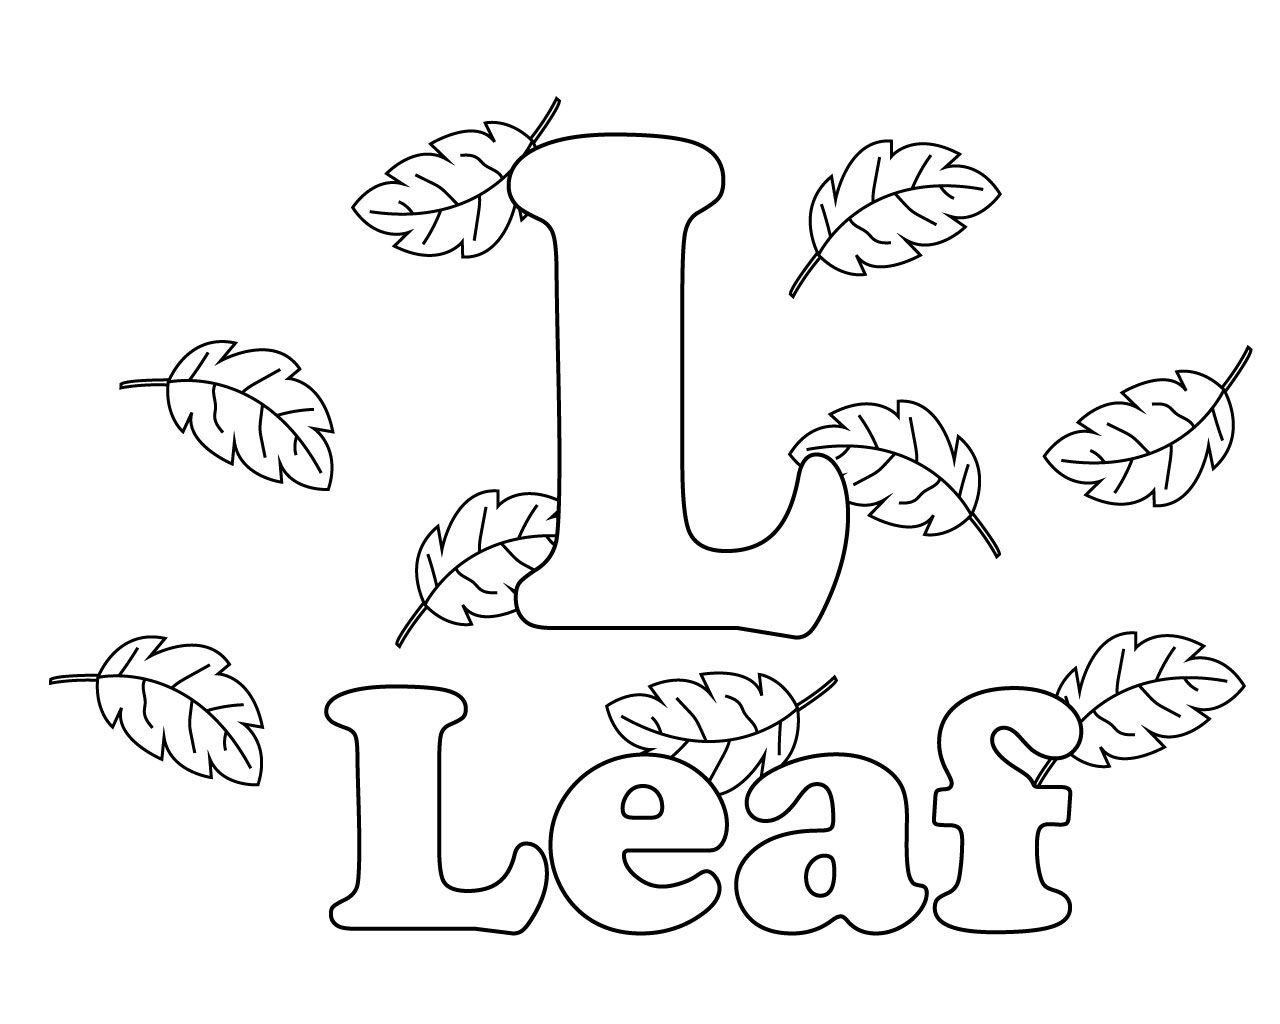 Free Letter L Coloring Pages You are free to download these ...